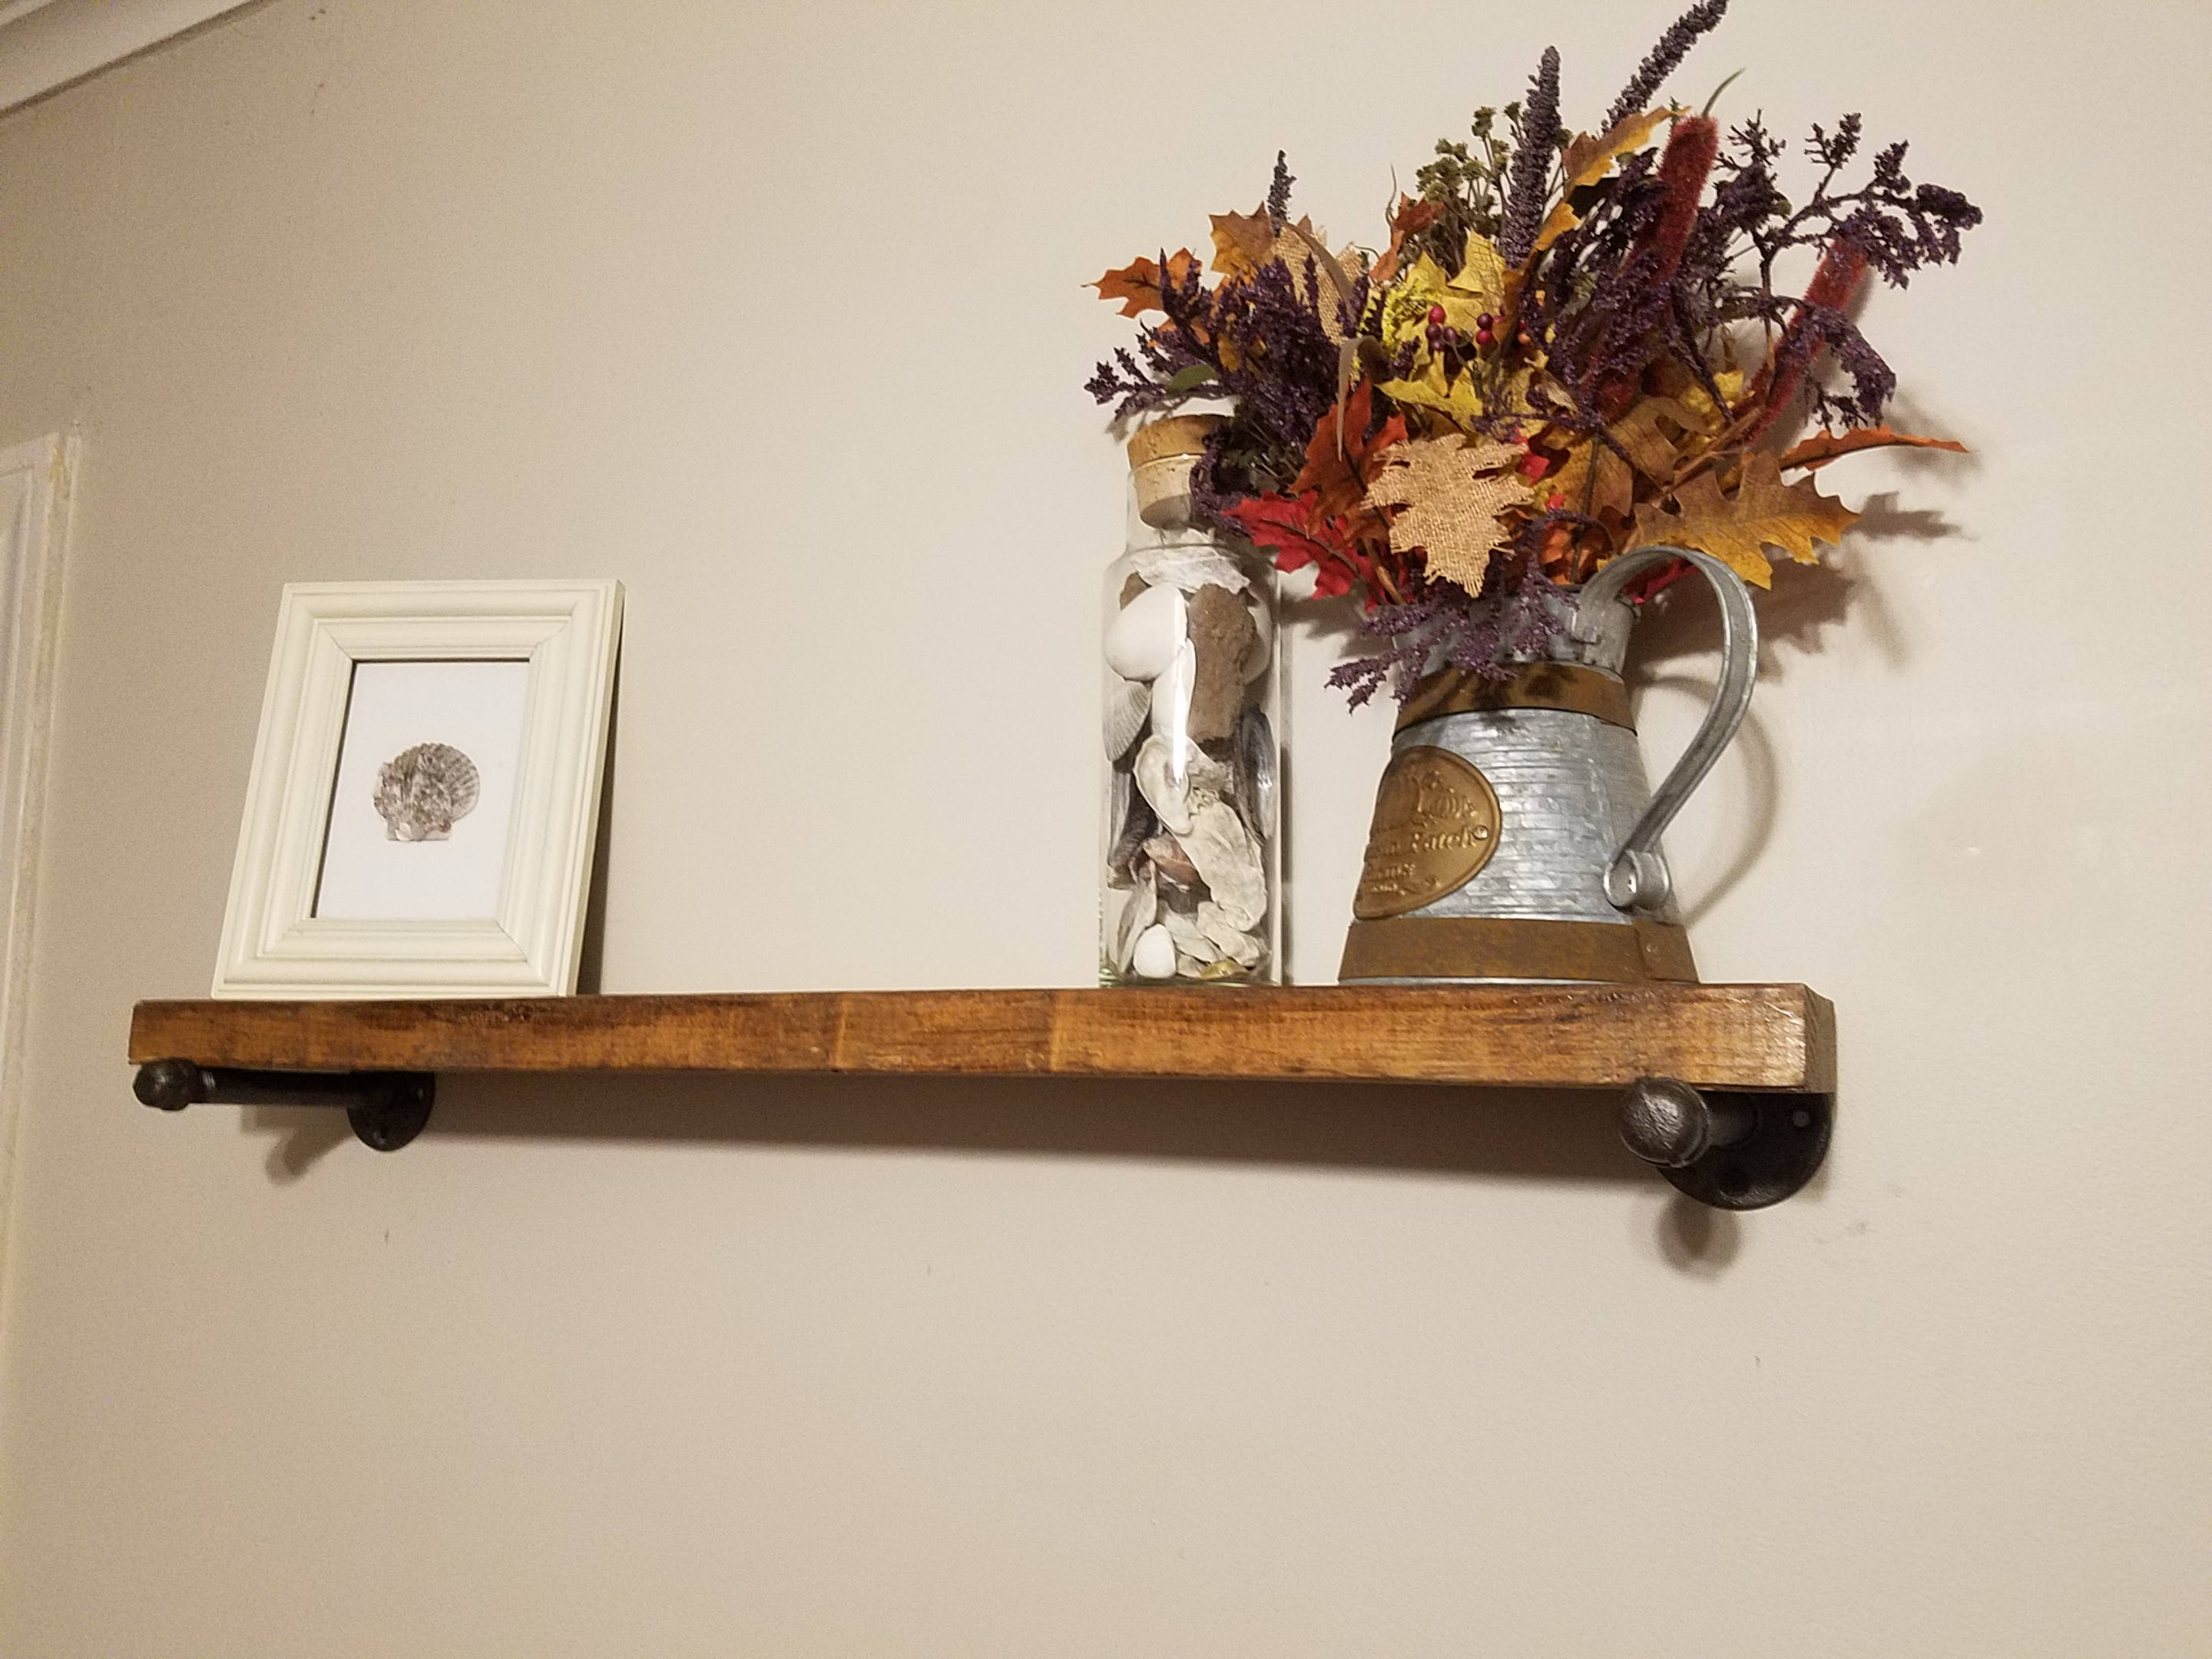 floating shelves inch deep industrial etsy fullxfull shelf wire brackets ikea peel and stick vinyl concrete sliding pantry canadian tire magic bag coat hook rack wood garage